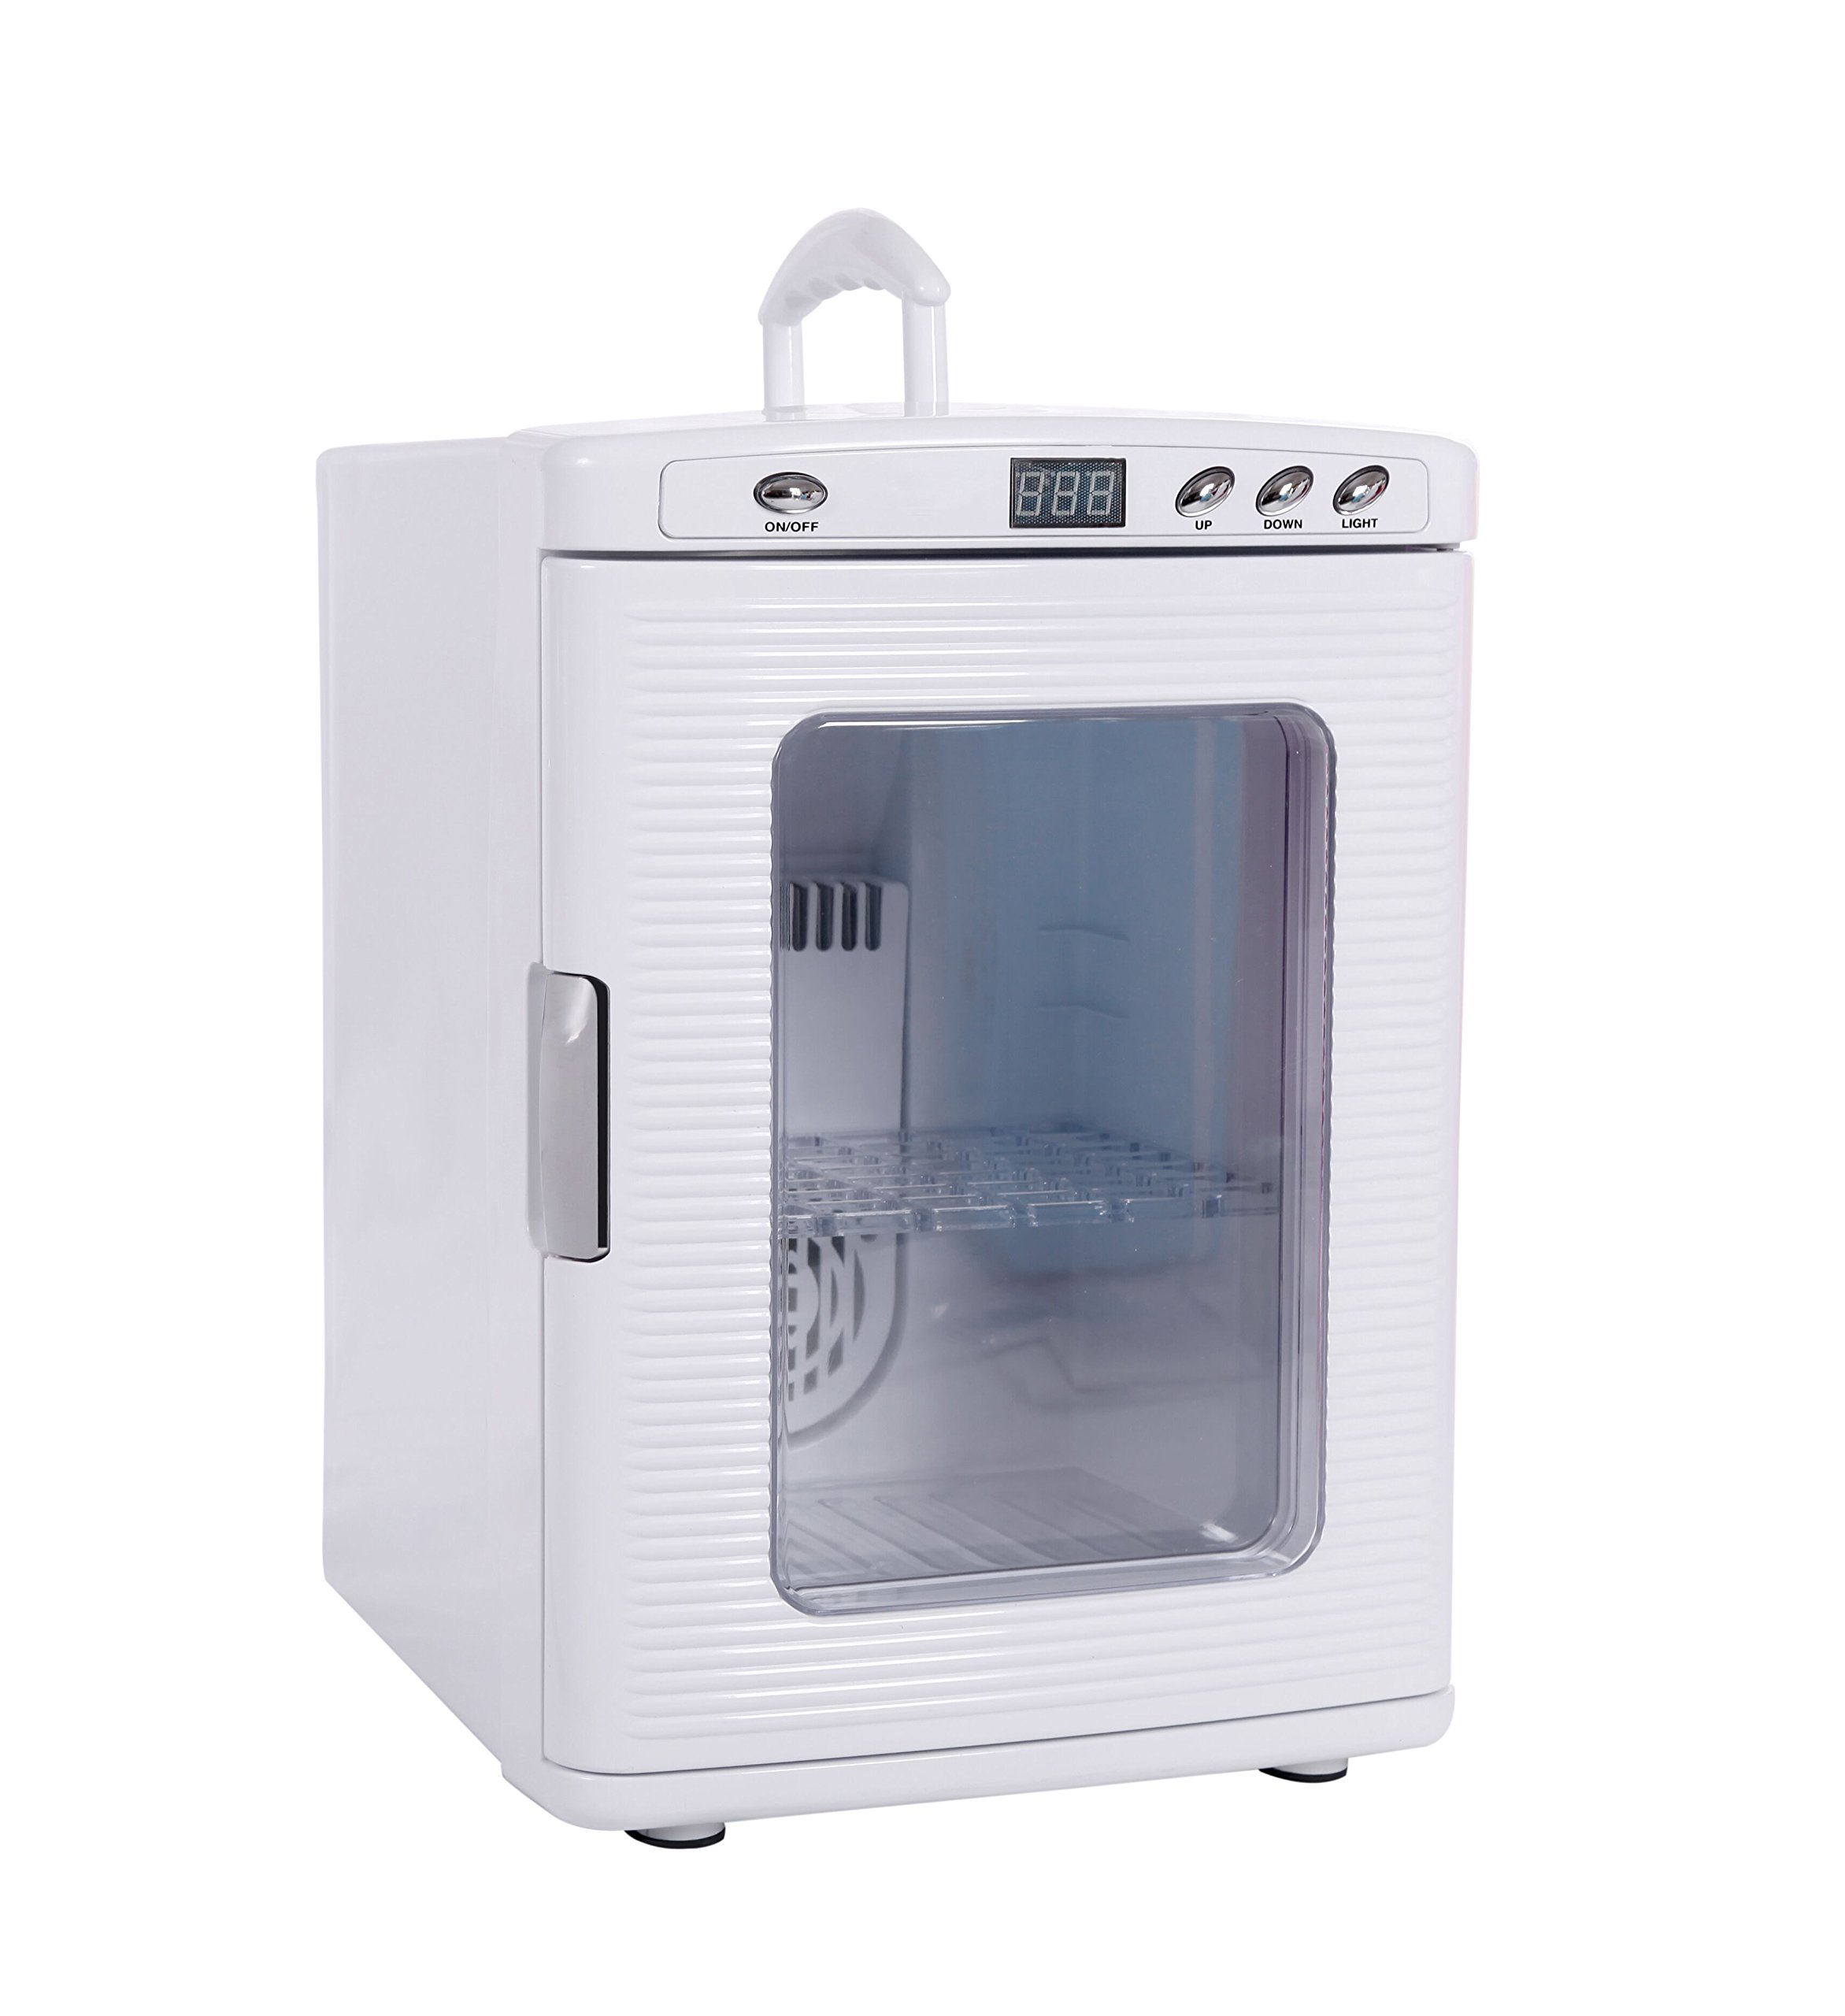 Portable 25L Mini Fridge Electric Cooler and Warmer Travel Refrigerator, DC 12V / AC 110V Thermoelectric System with Mute setting for Home, Office, Car & Boat, 41℉-140℉ (White)